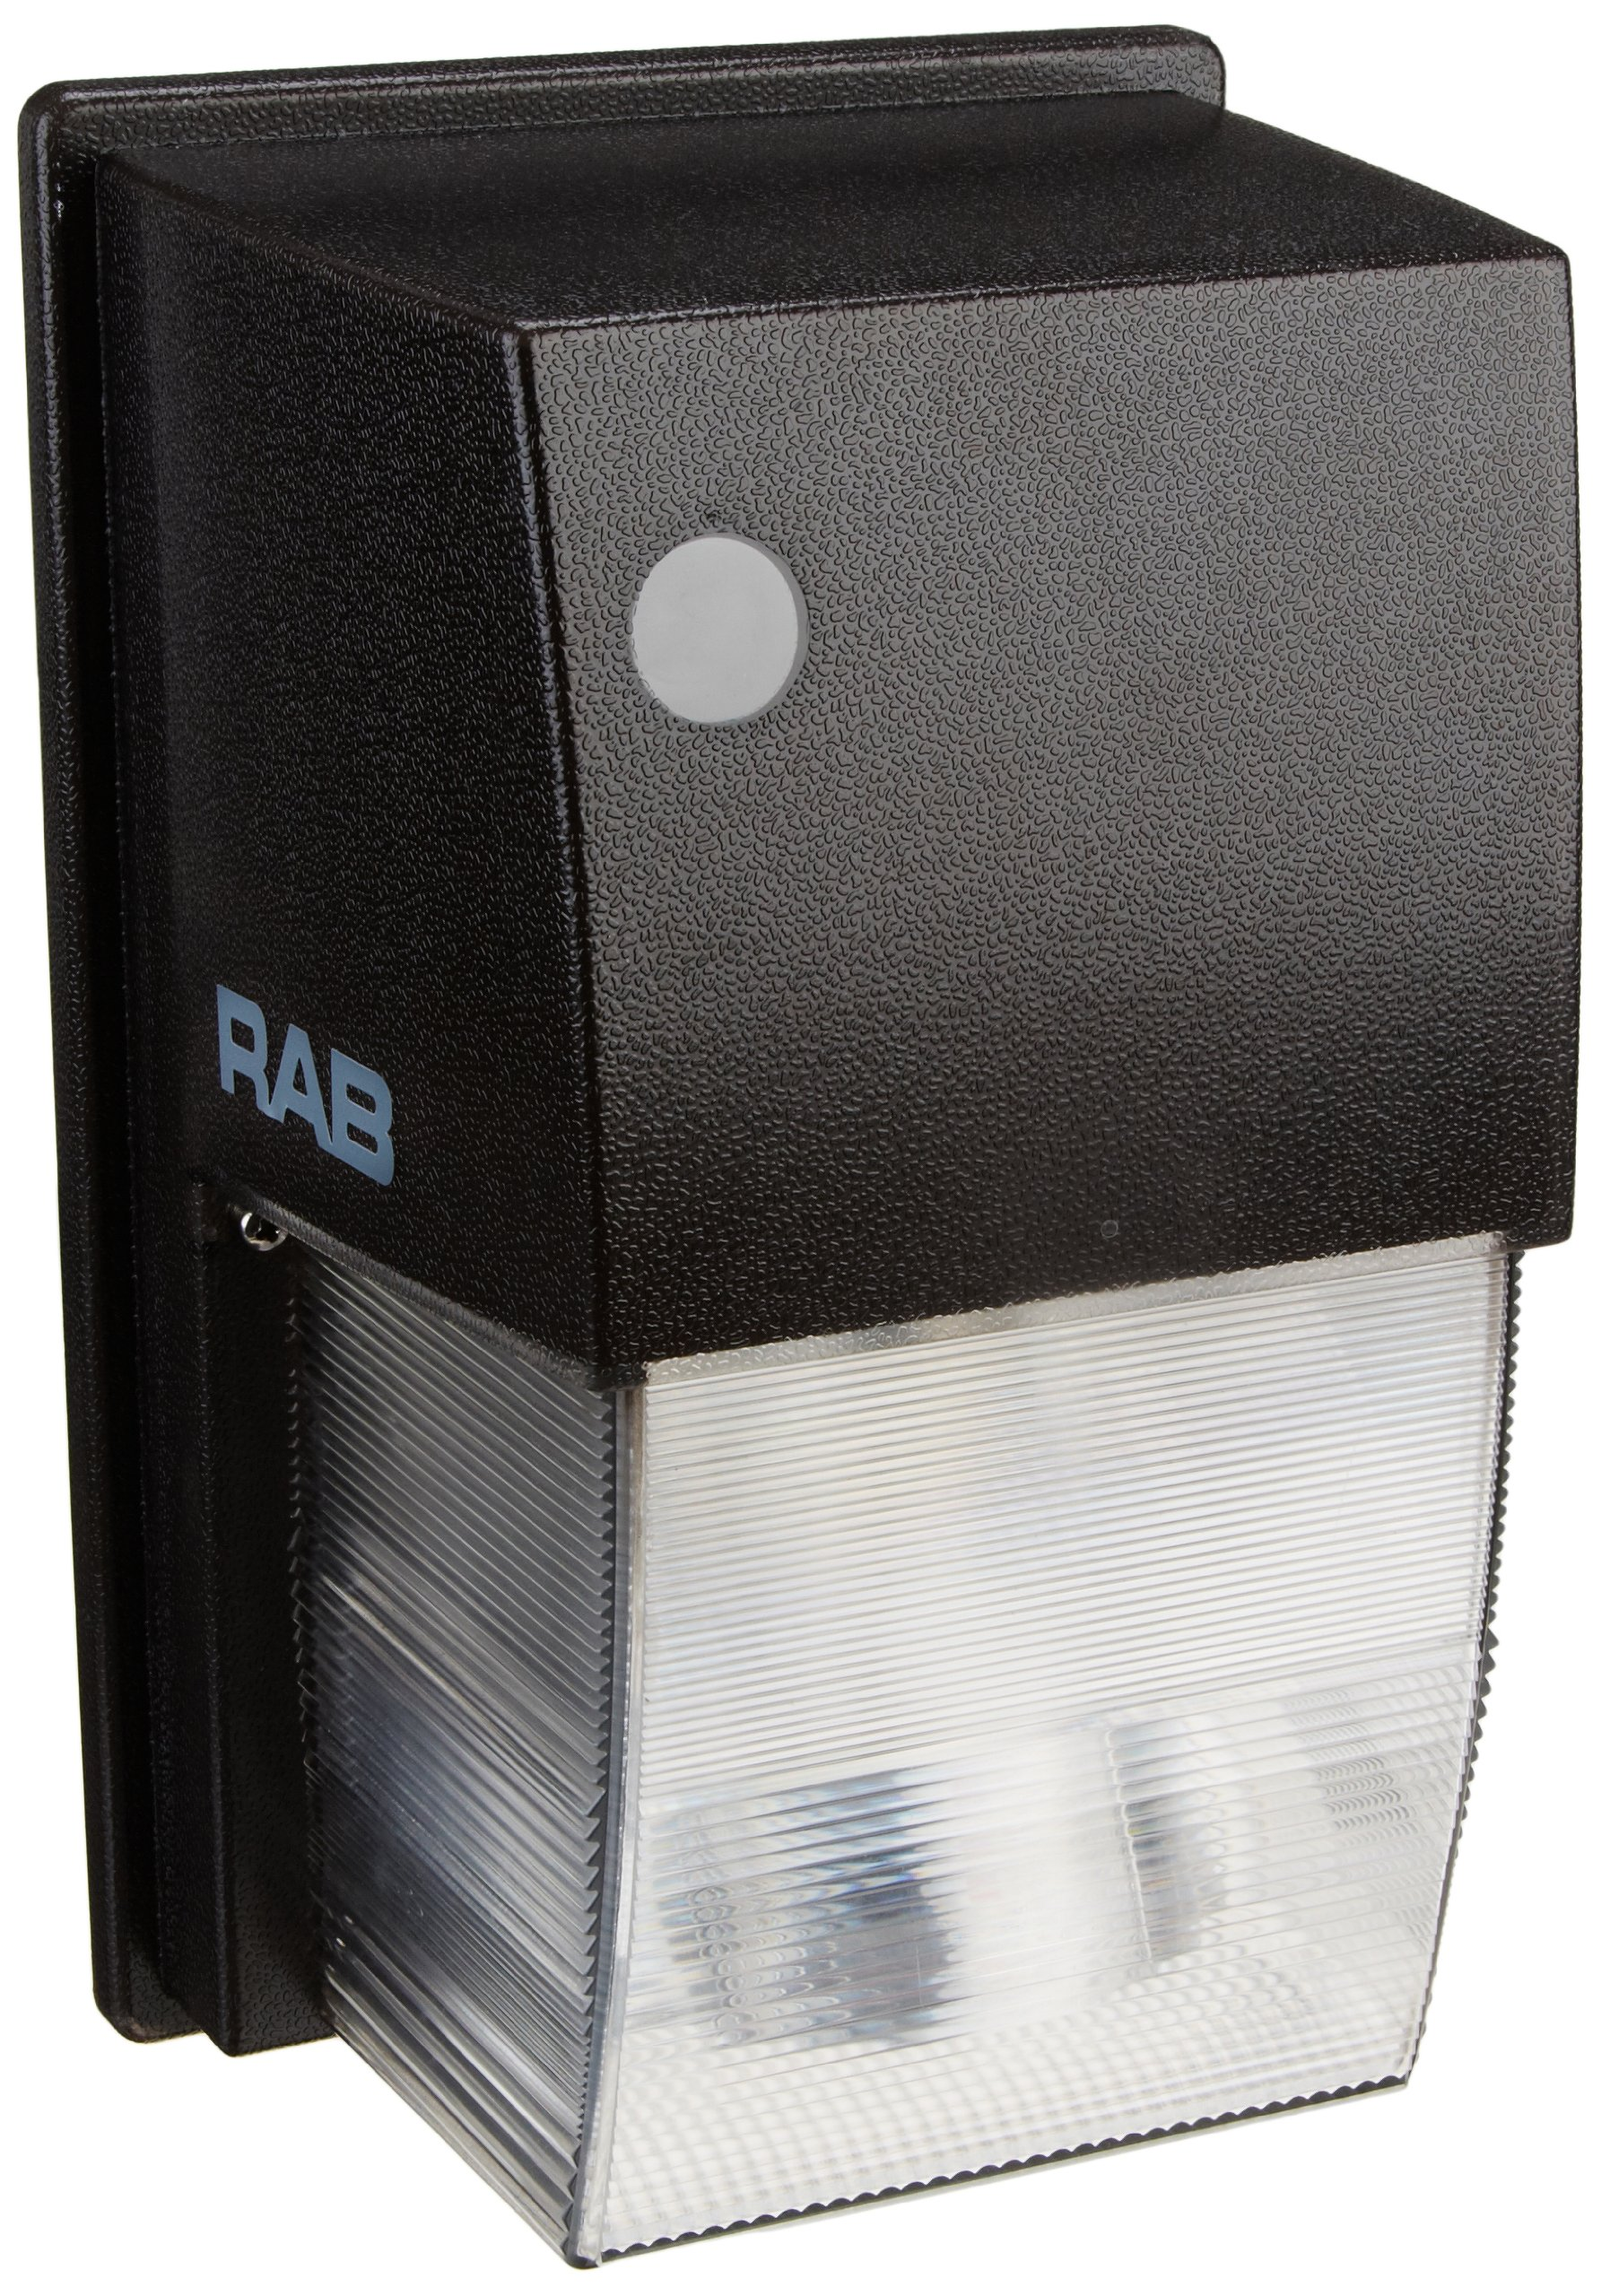 RAB Lighting WPTS50 Tallpack High Pressure Sodium Lamp with Polycarbonate Molded Refractor, ED17 Type, Aluminum, 50W Power, 4000 Lumens, 120V, Bronze Color